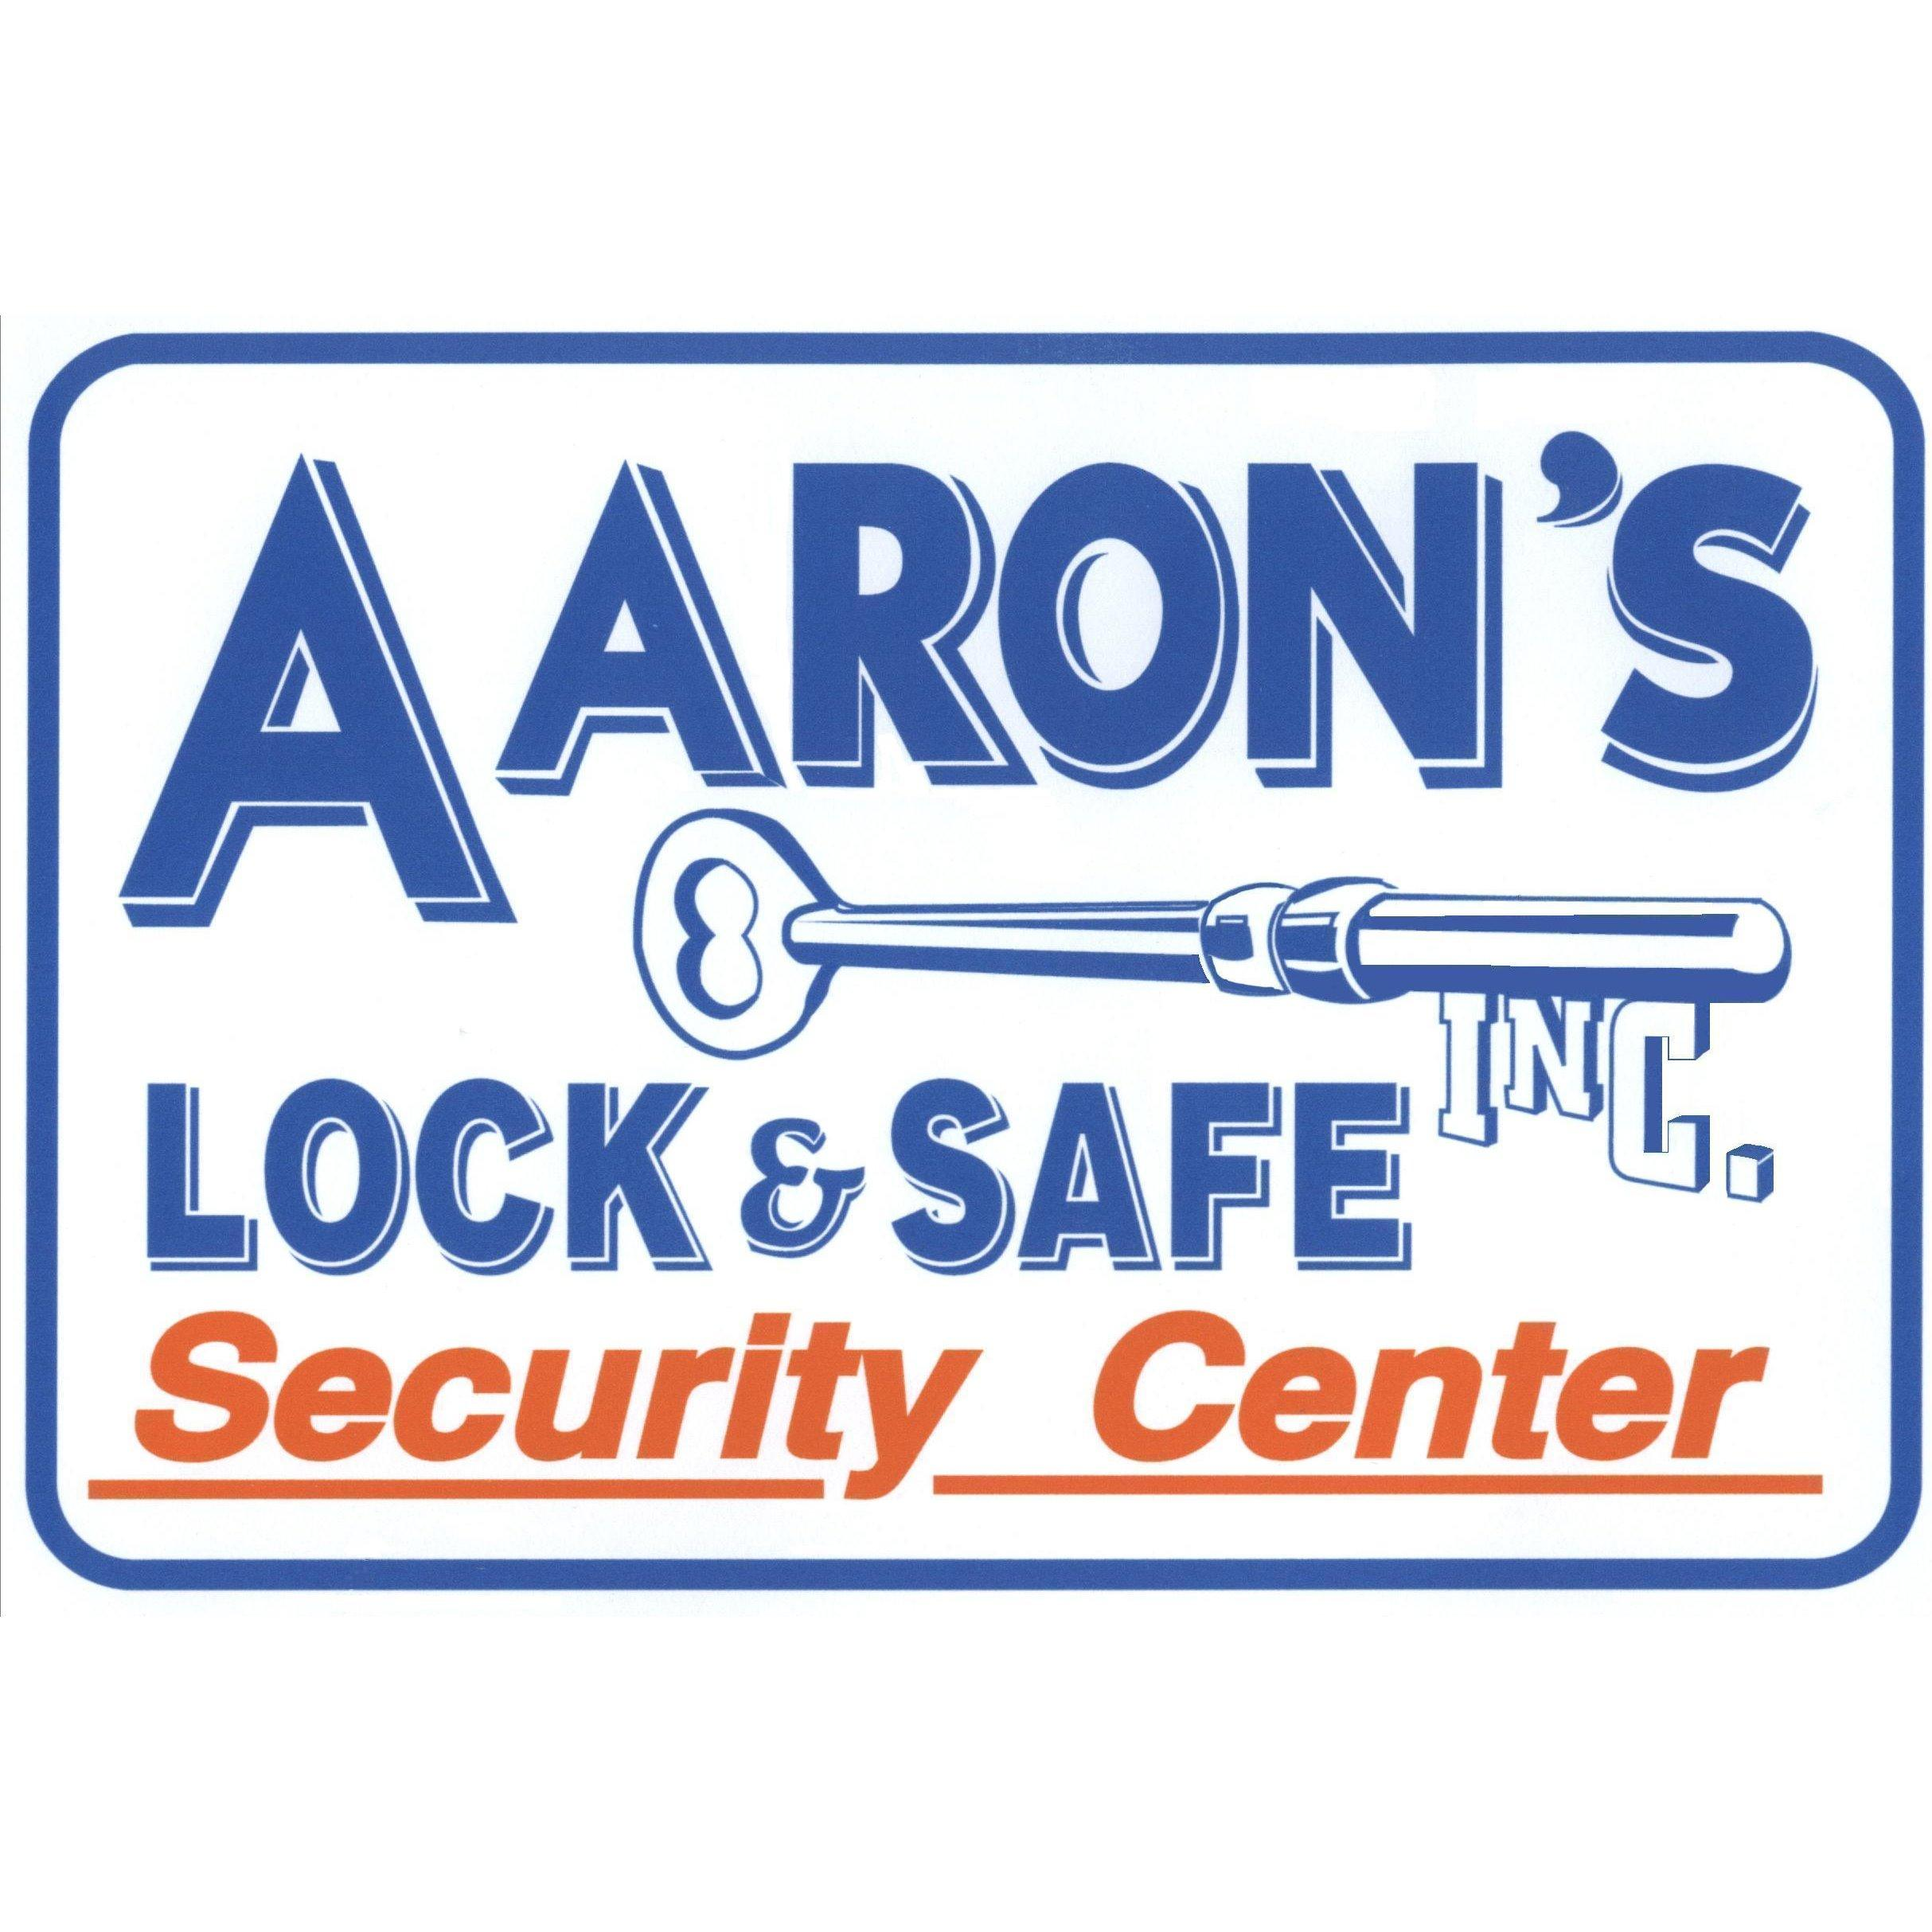 Aaron's Lock & Safe Inc image 5